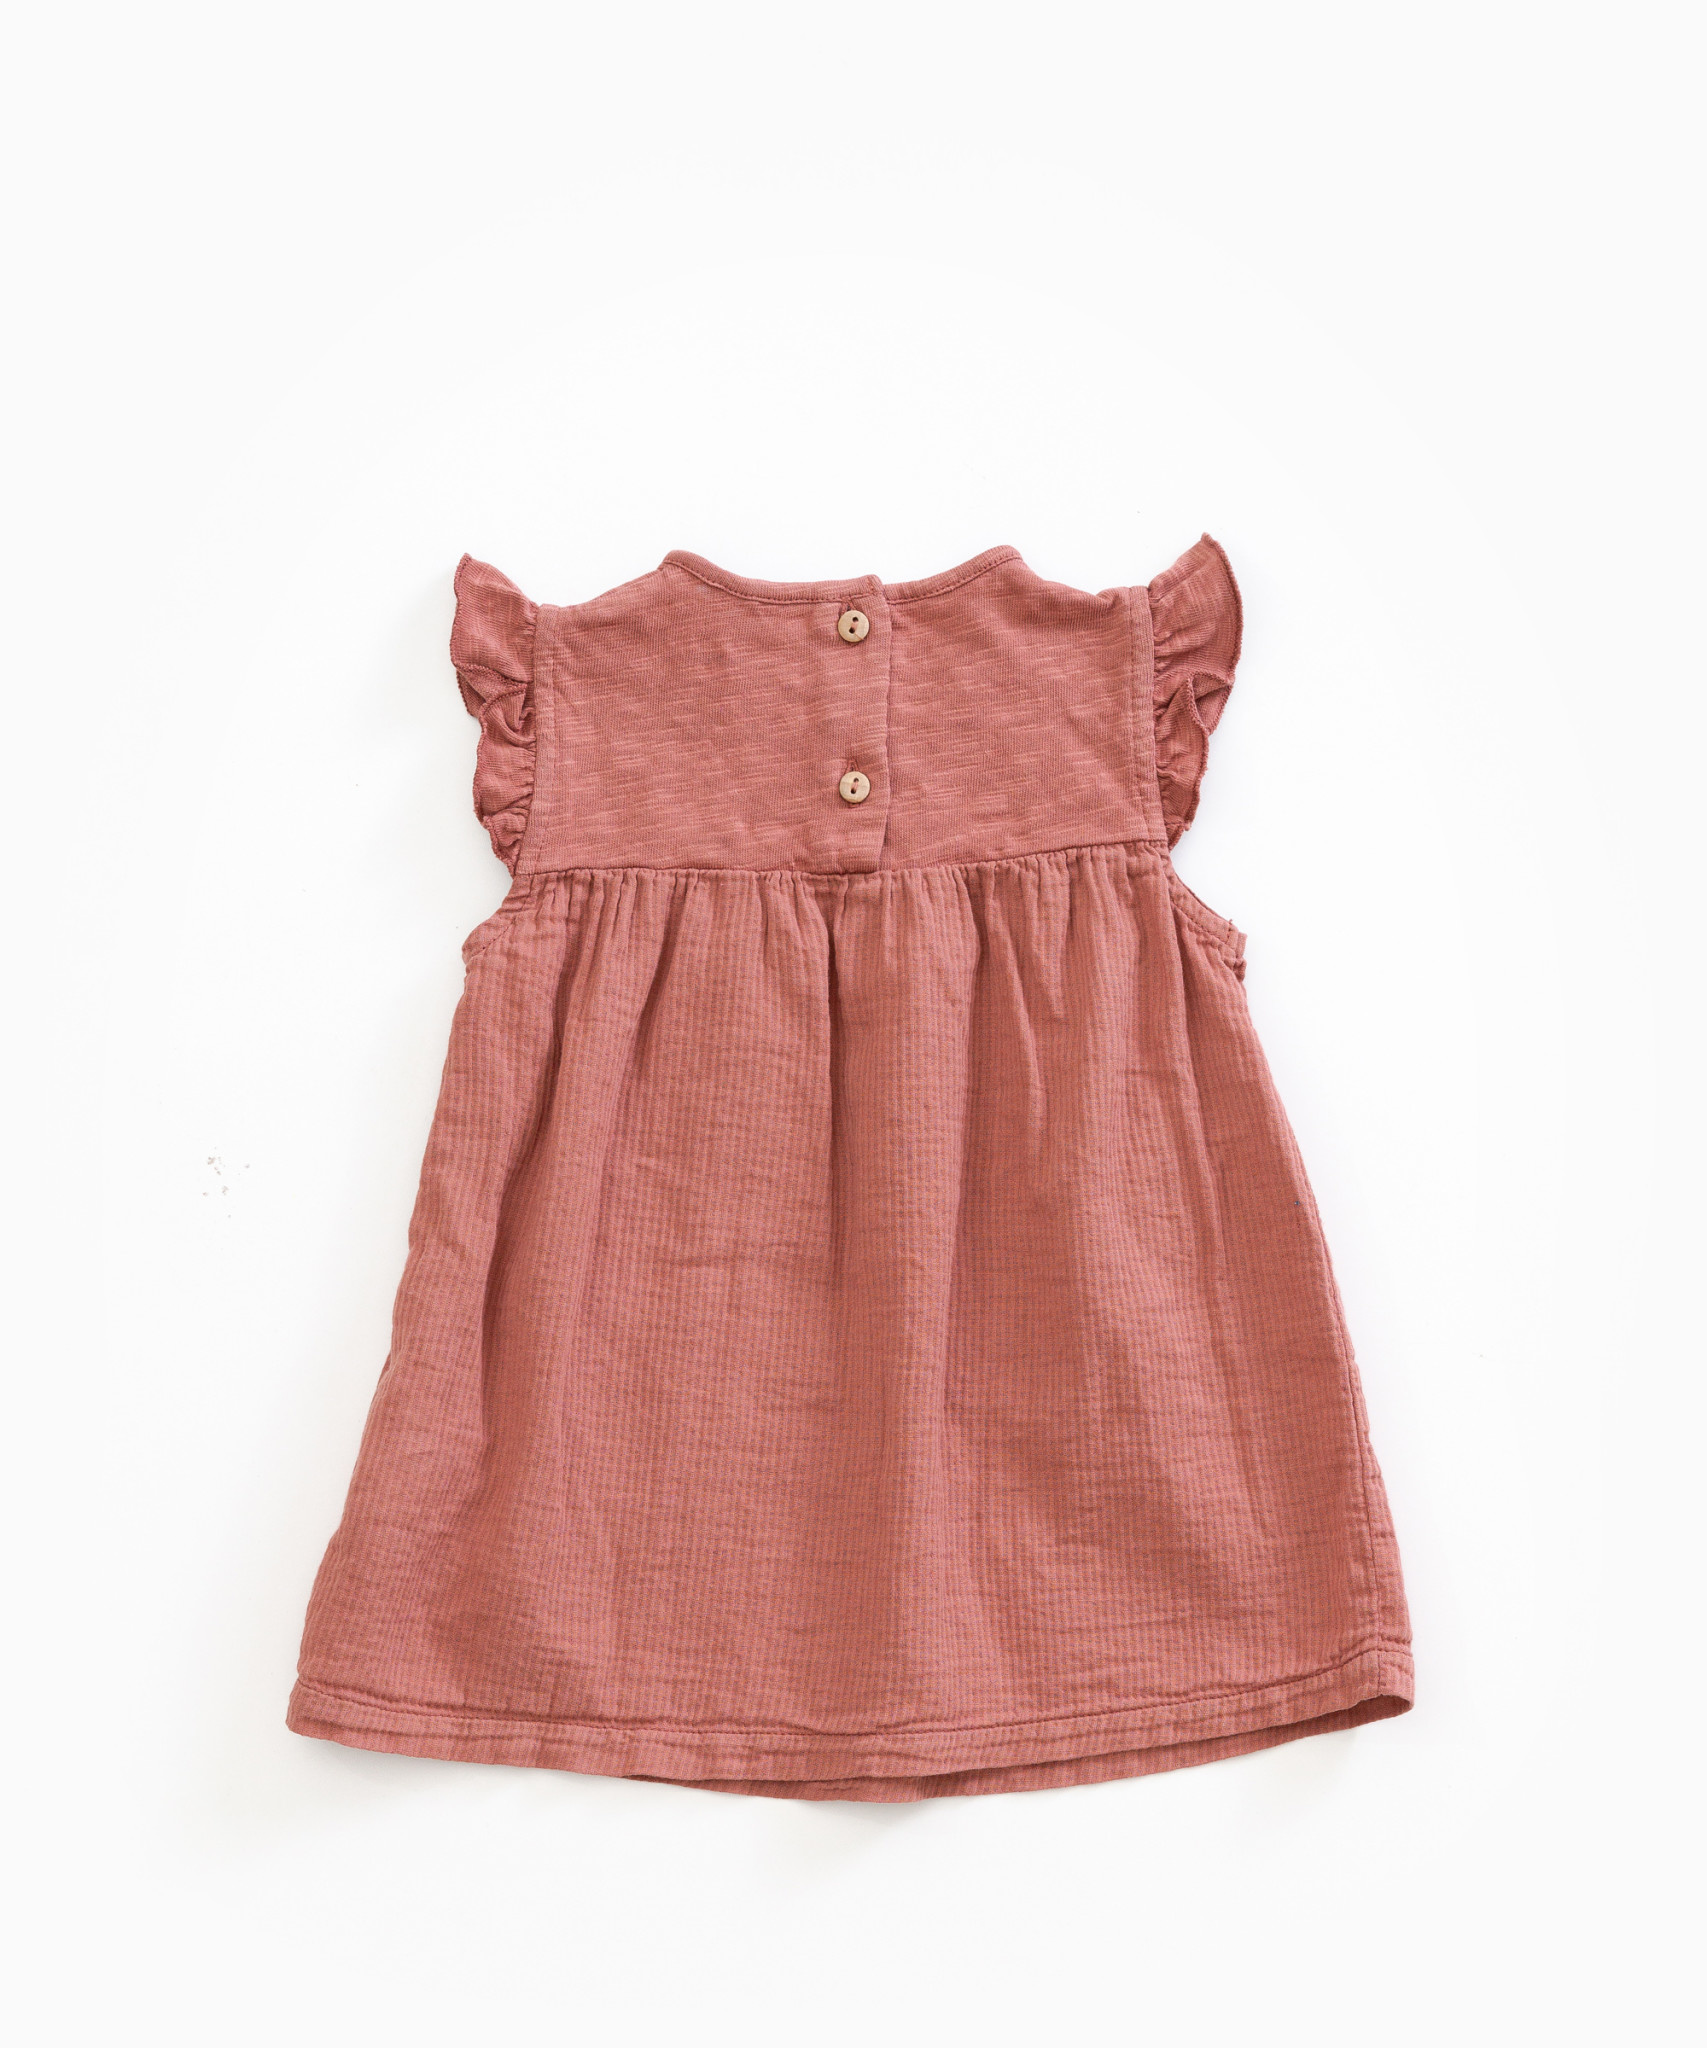 Play-up Dress in organic cotton with pockets |Old tile